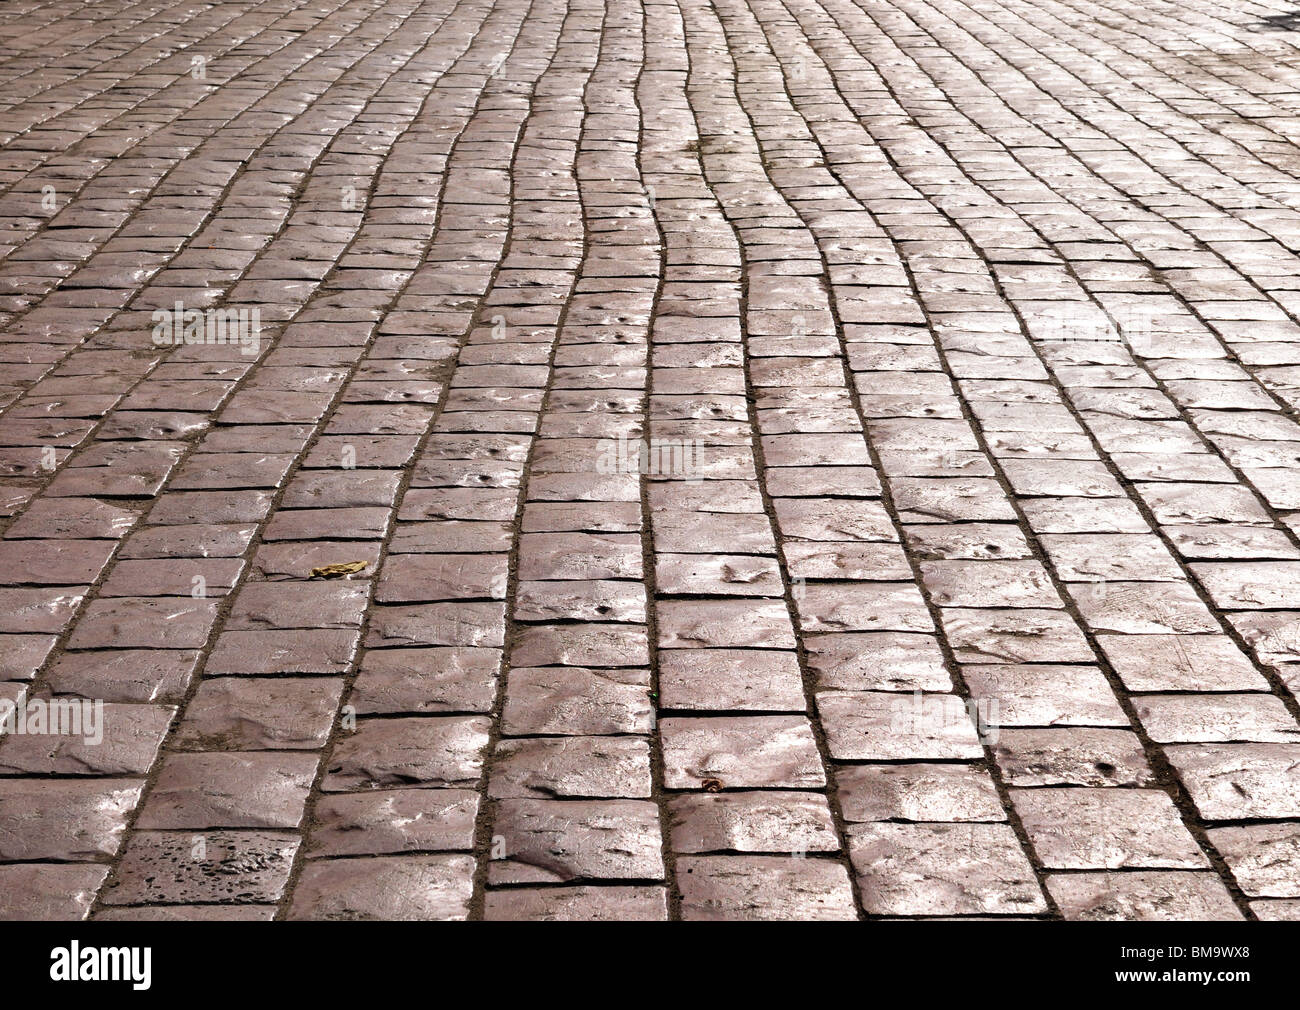 Street paved with cobblestone - Stock Image